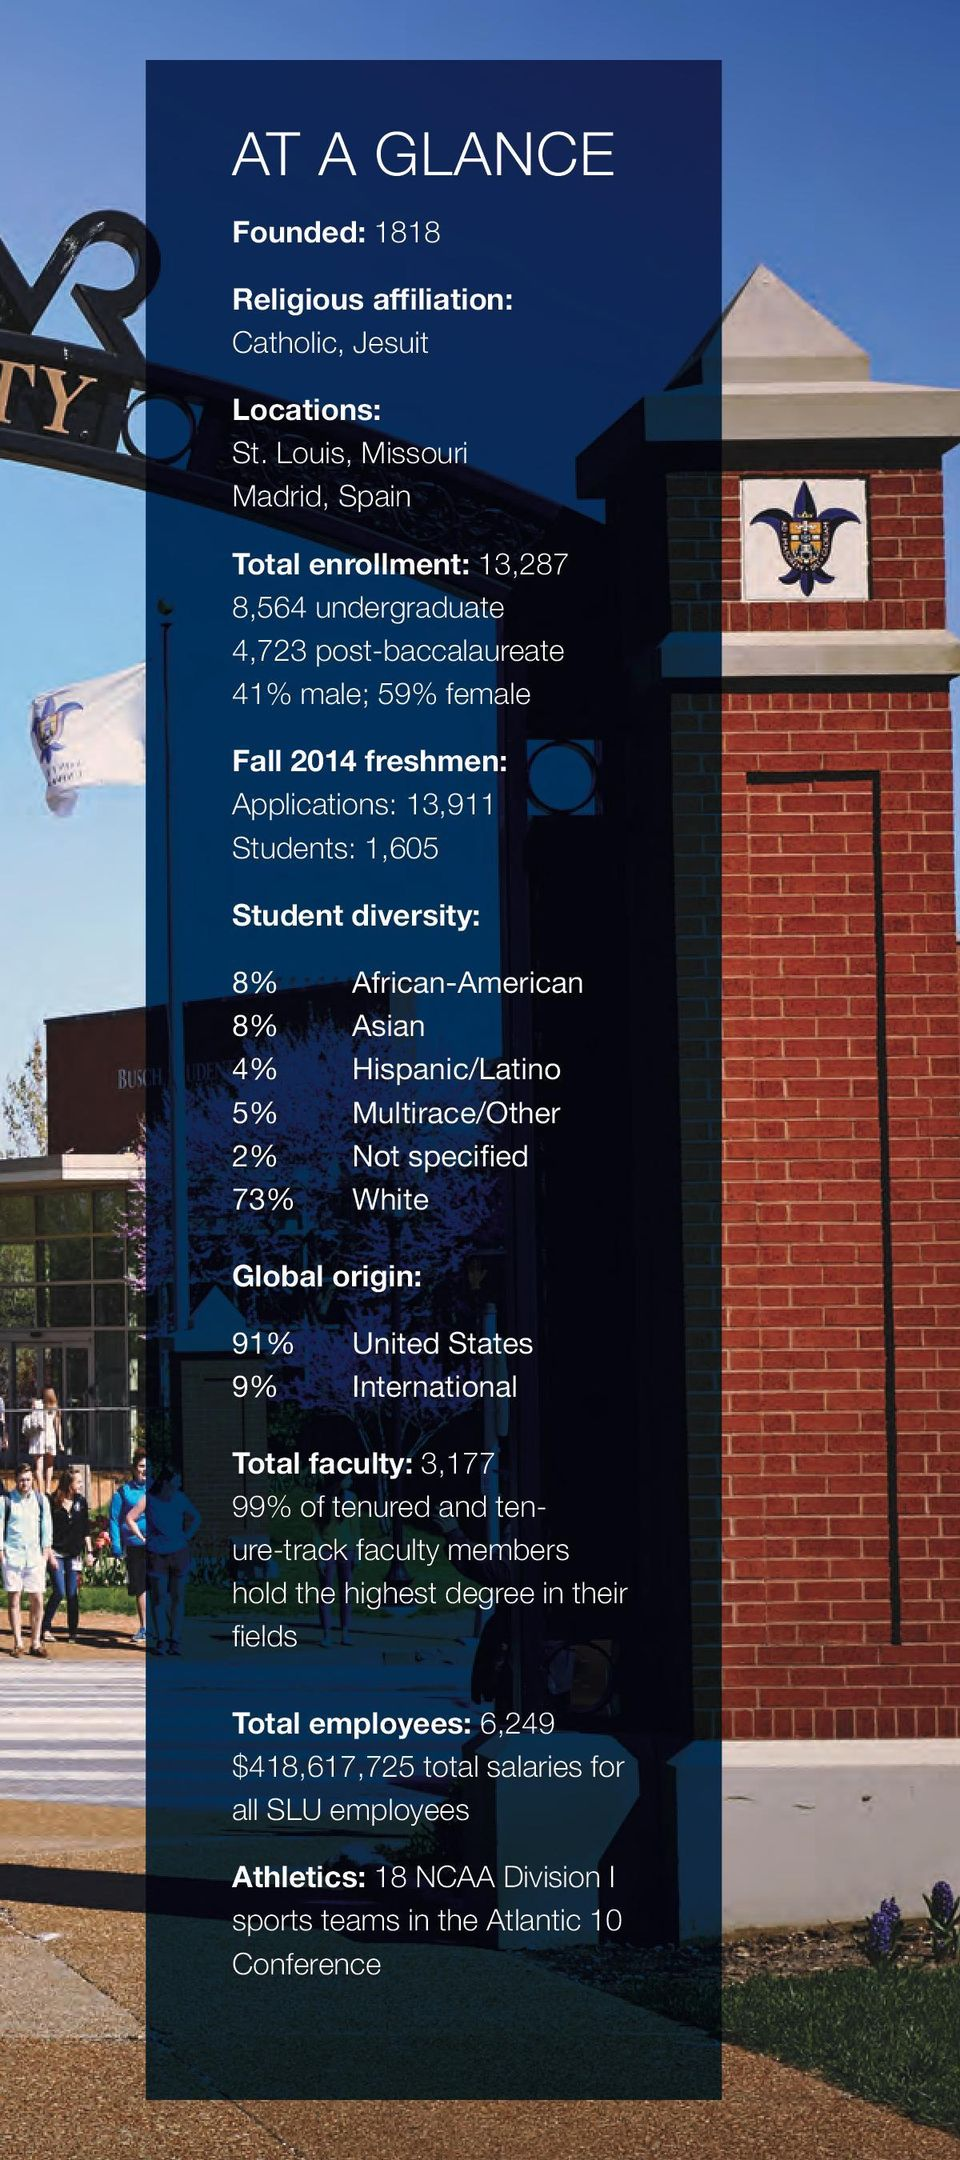 Students: 1,605 Student diversity: 8% African-American 8% Asian 4% Hispanic/Latino 5% Multirace/Other 2% Not specified 73% White Global origin: 91% United States 9%